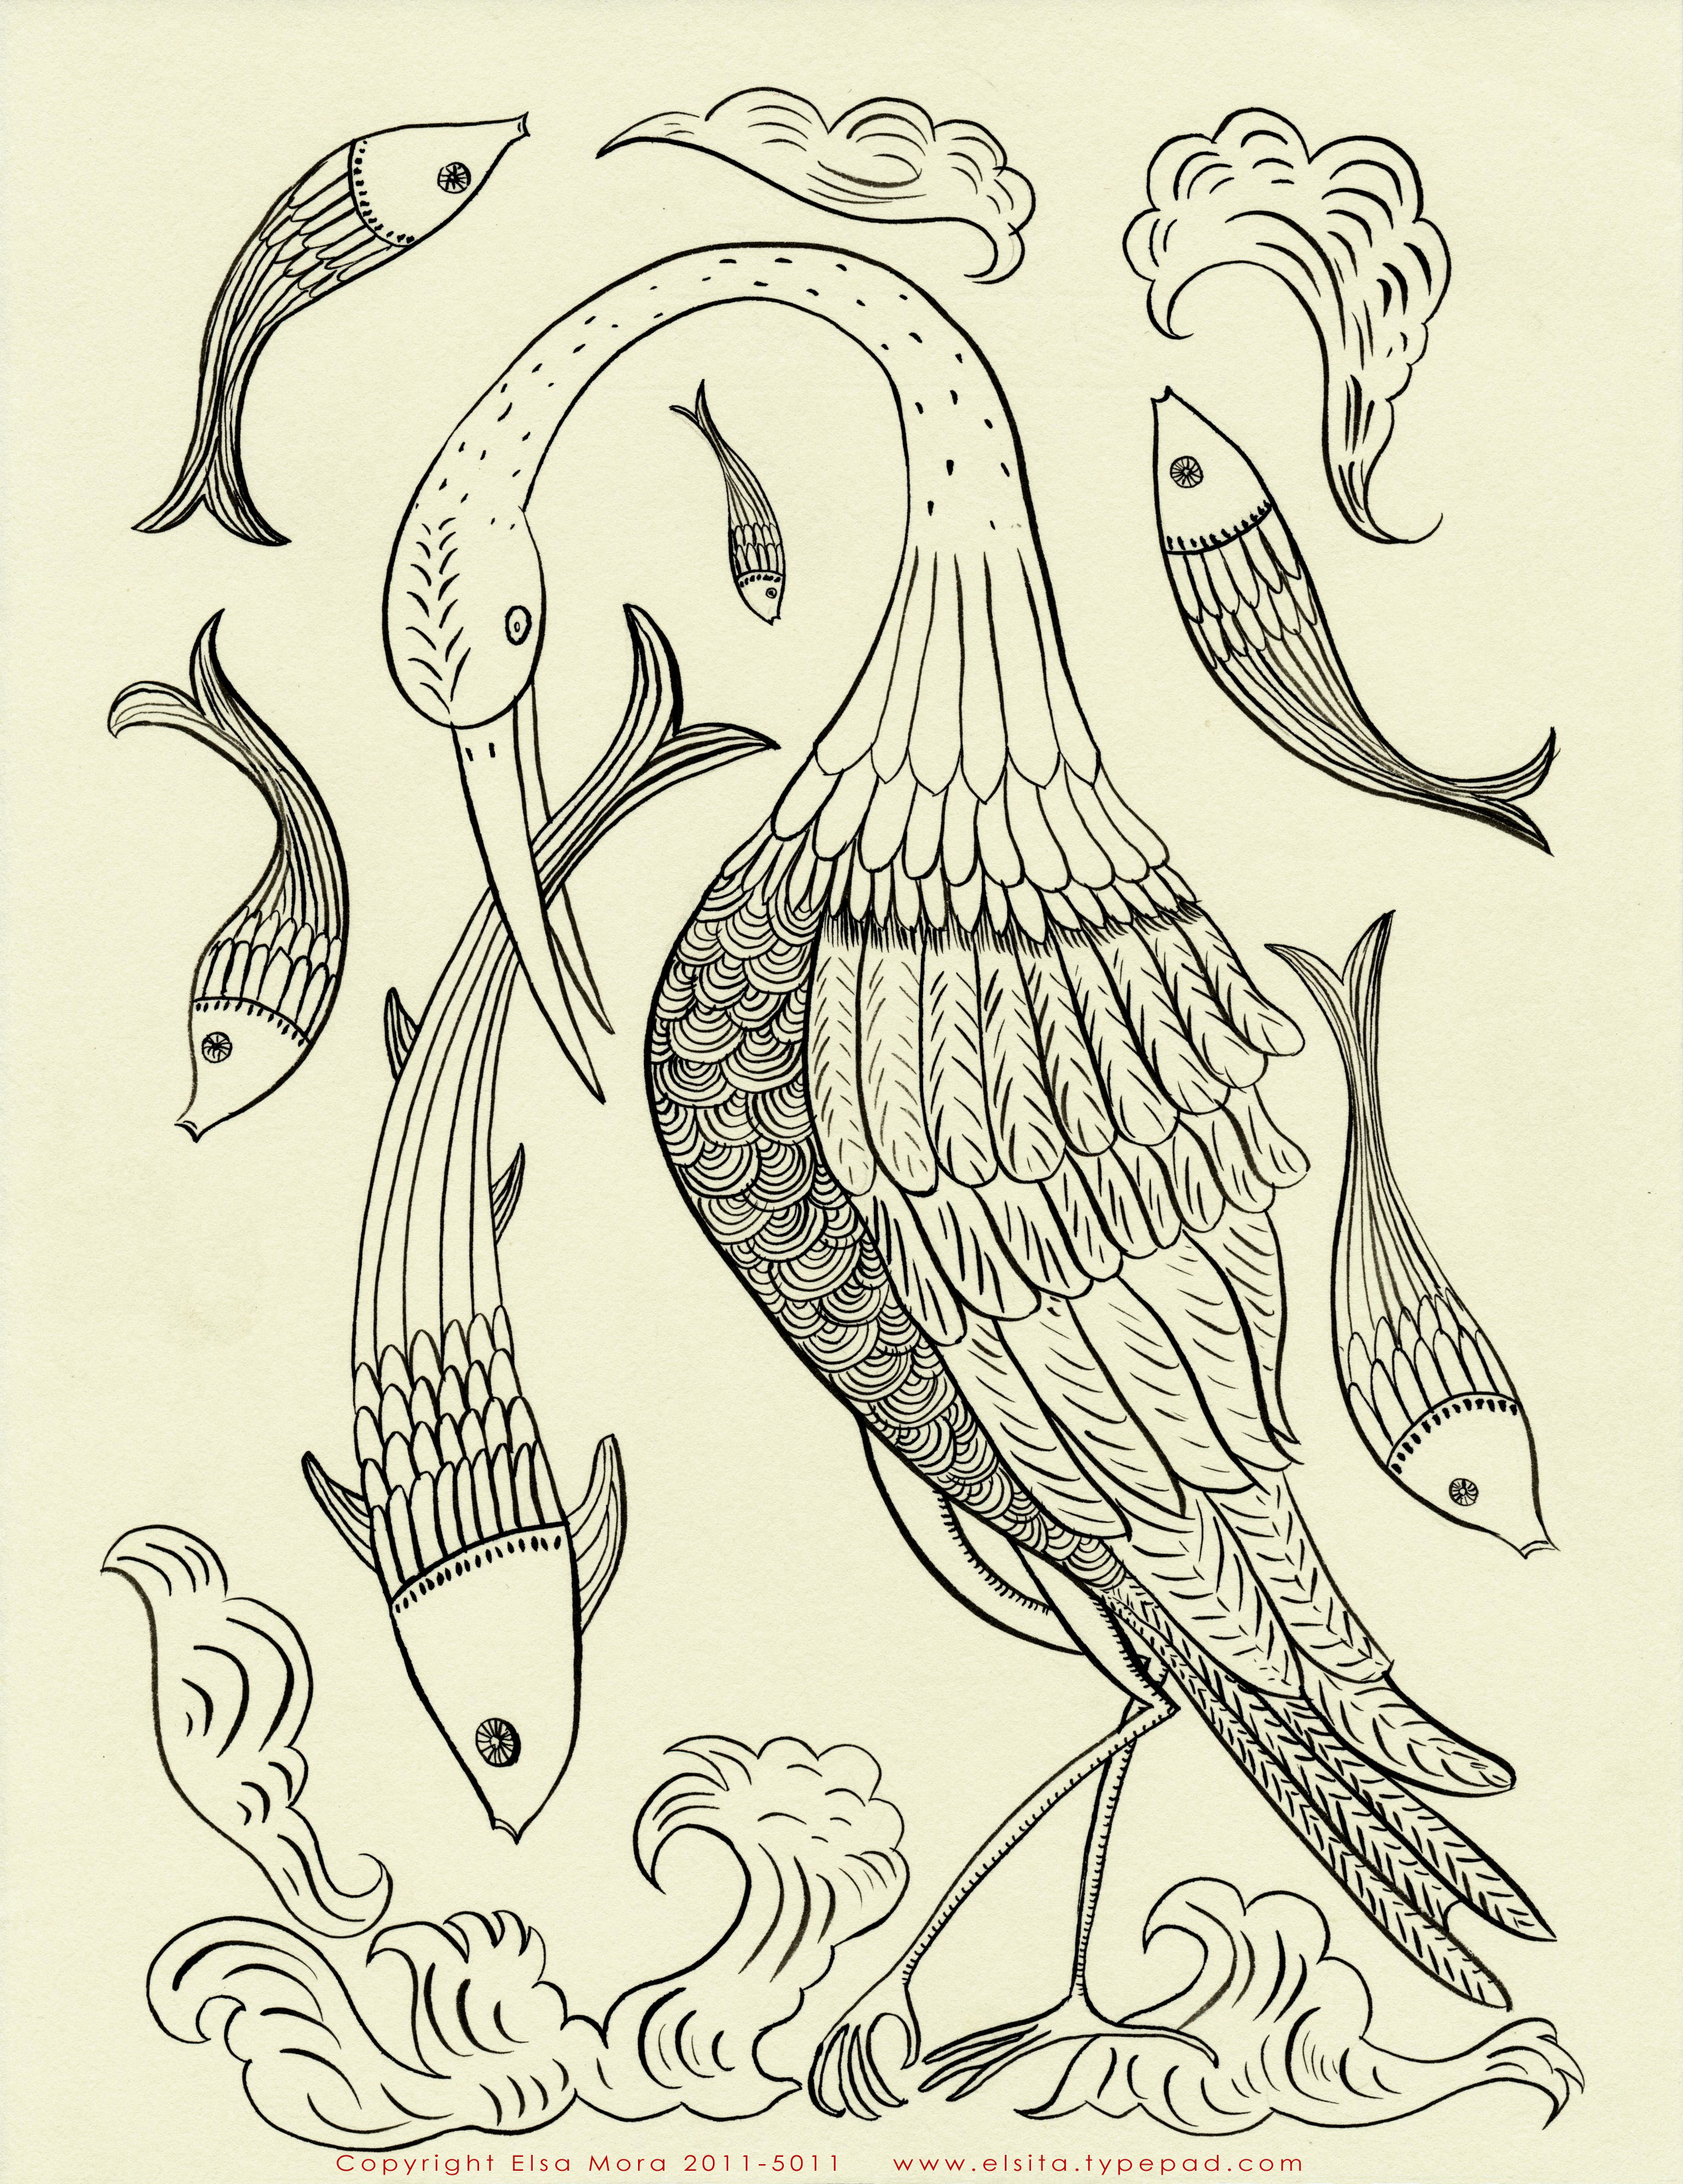 Elsa mora two free embroidery patterns for you bird and fish embroidery pattern bankloansurffo Image collections